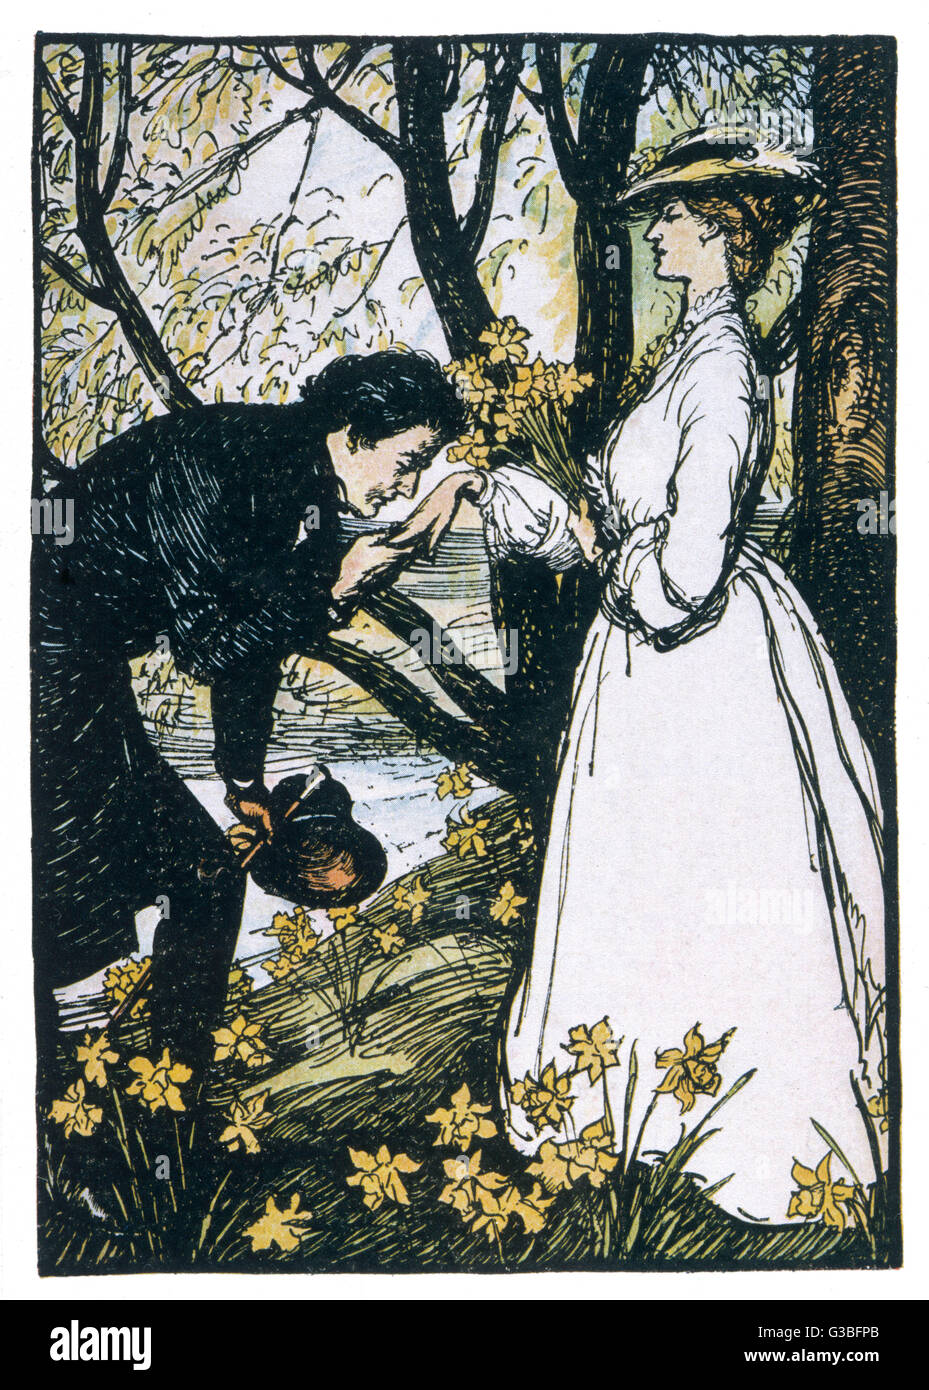 He kisses her hand (note that  she is sixteen years old).        Date: First published: 1855 - Stock Image